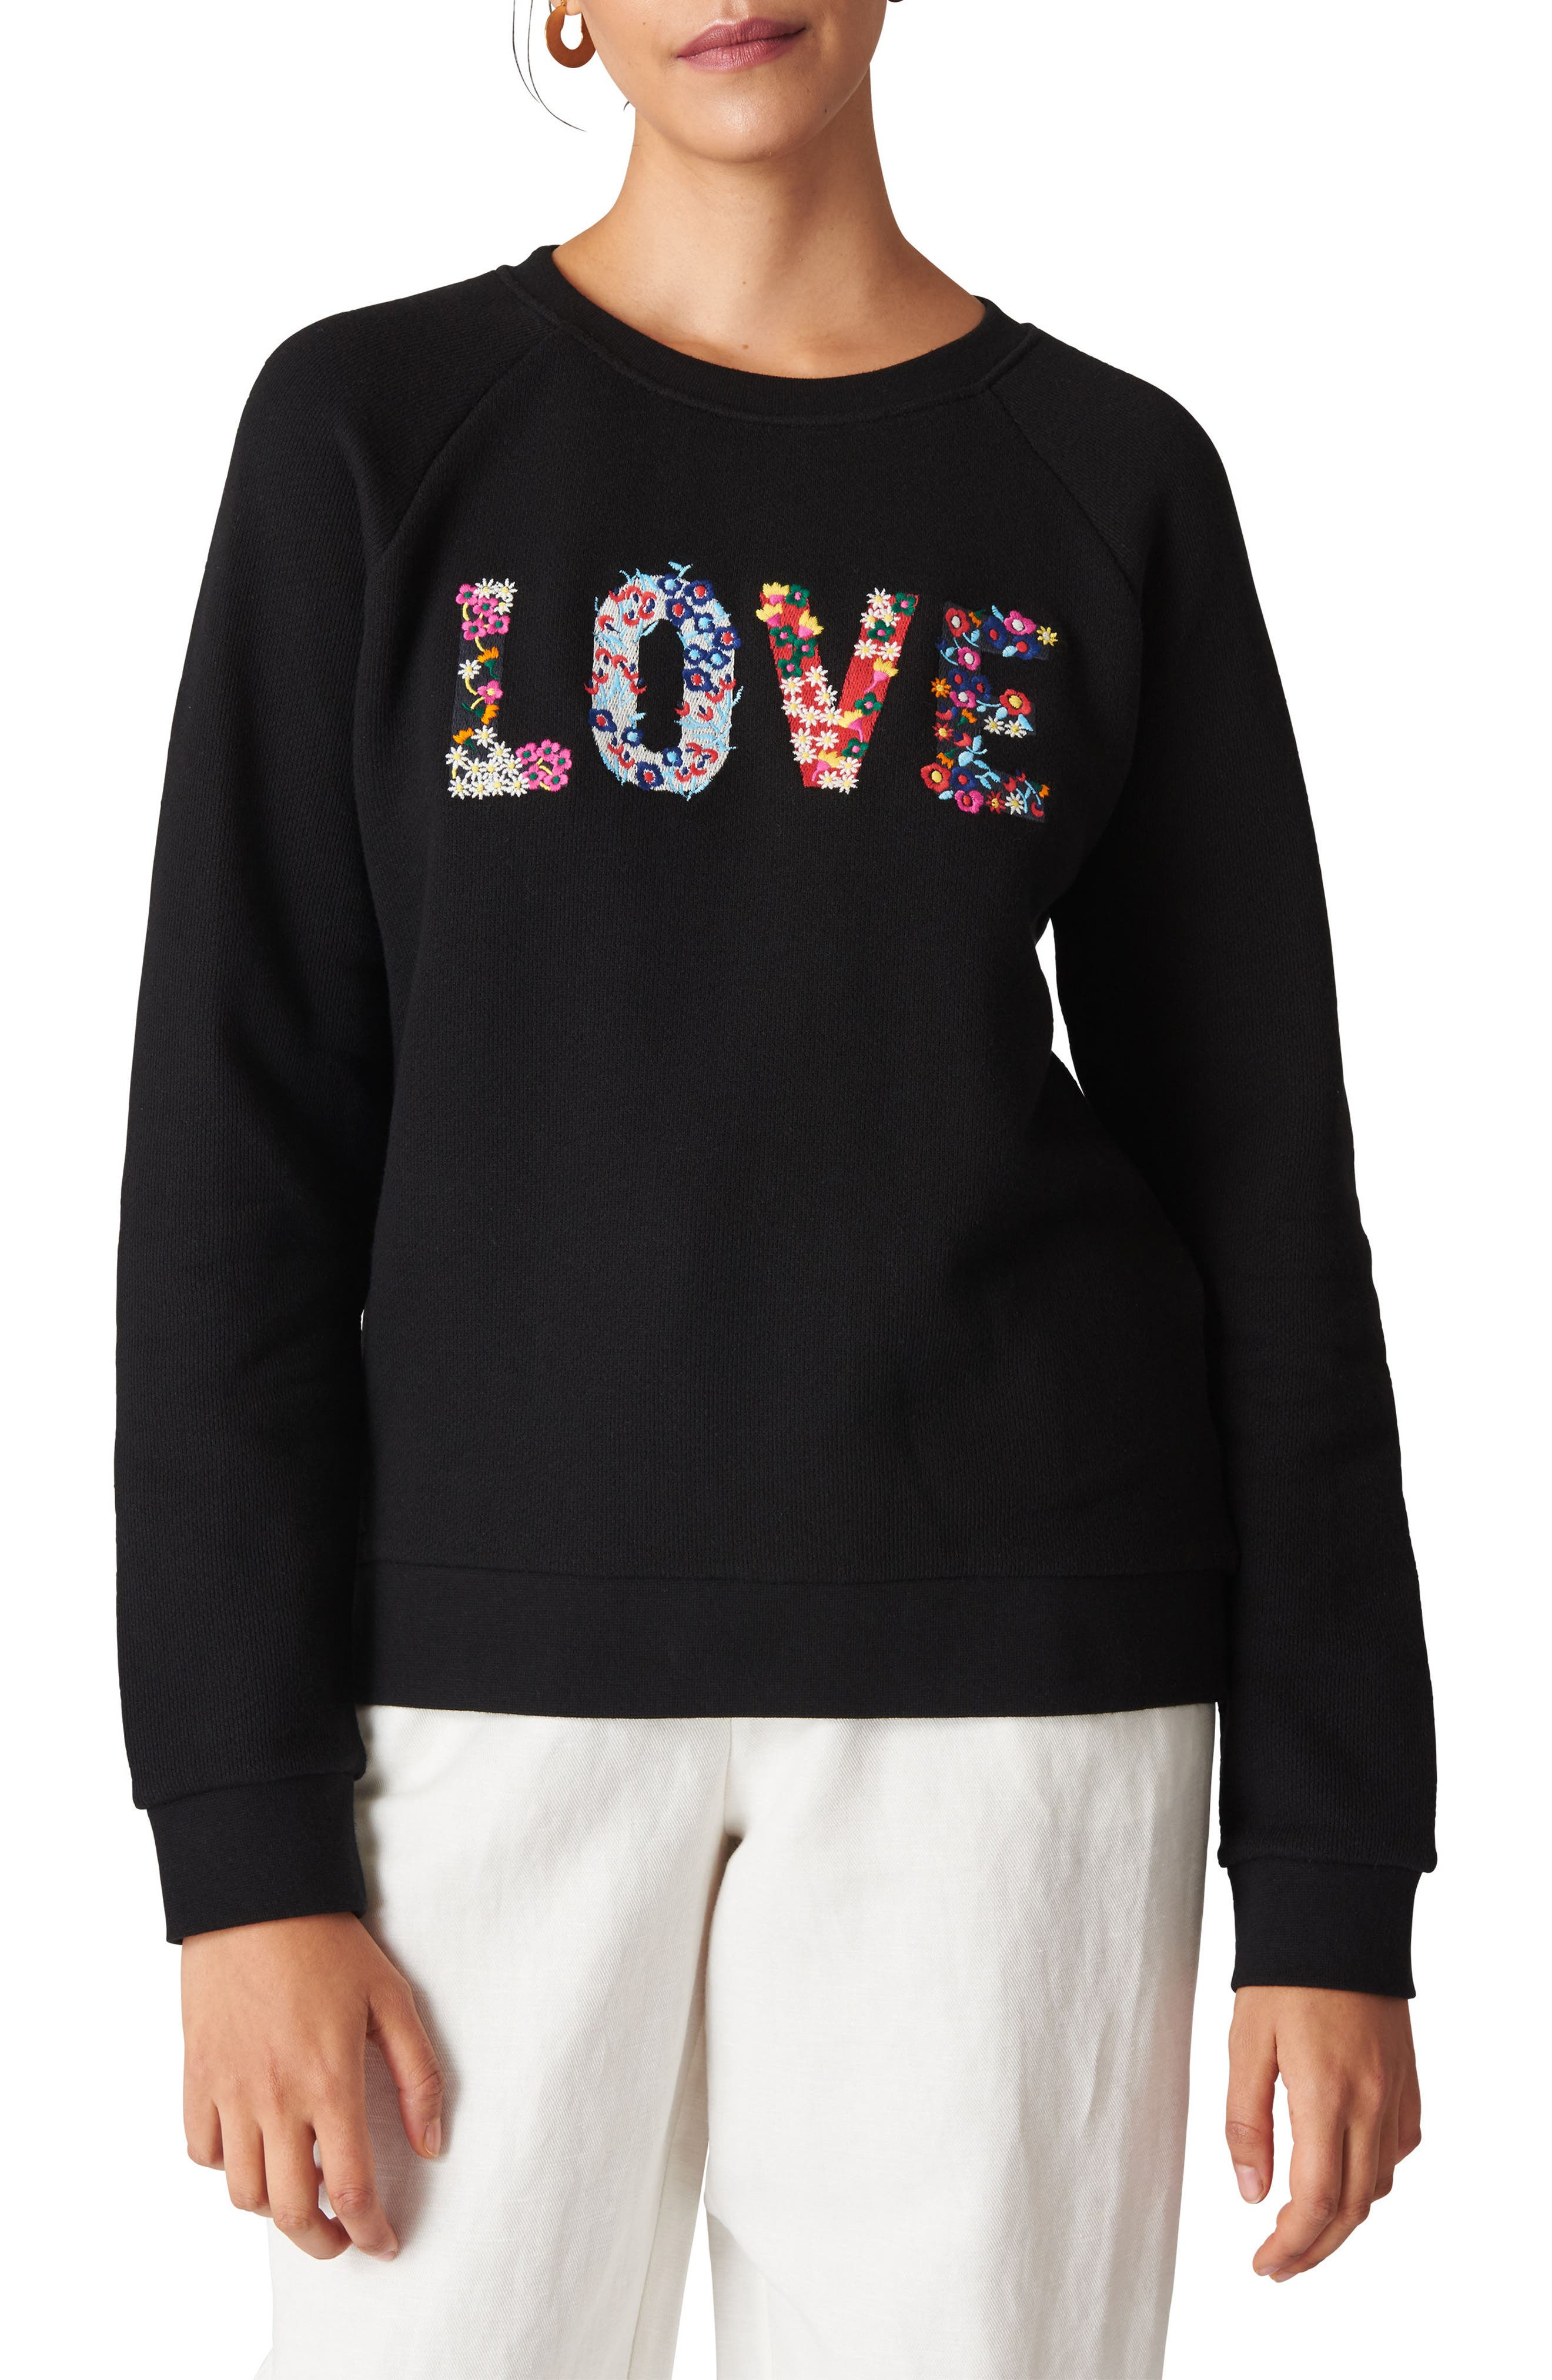 Whistles Love Embroidered Sweatshirt